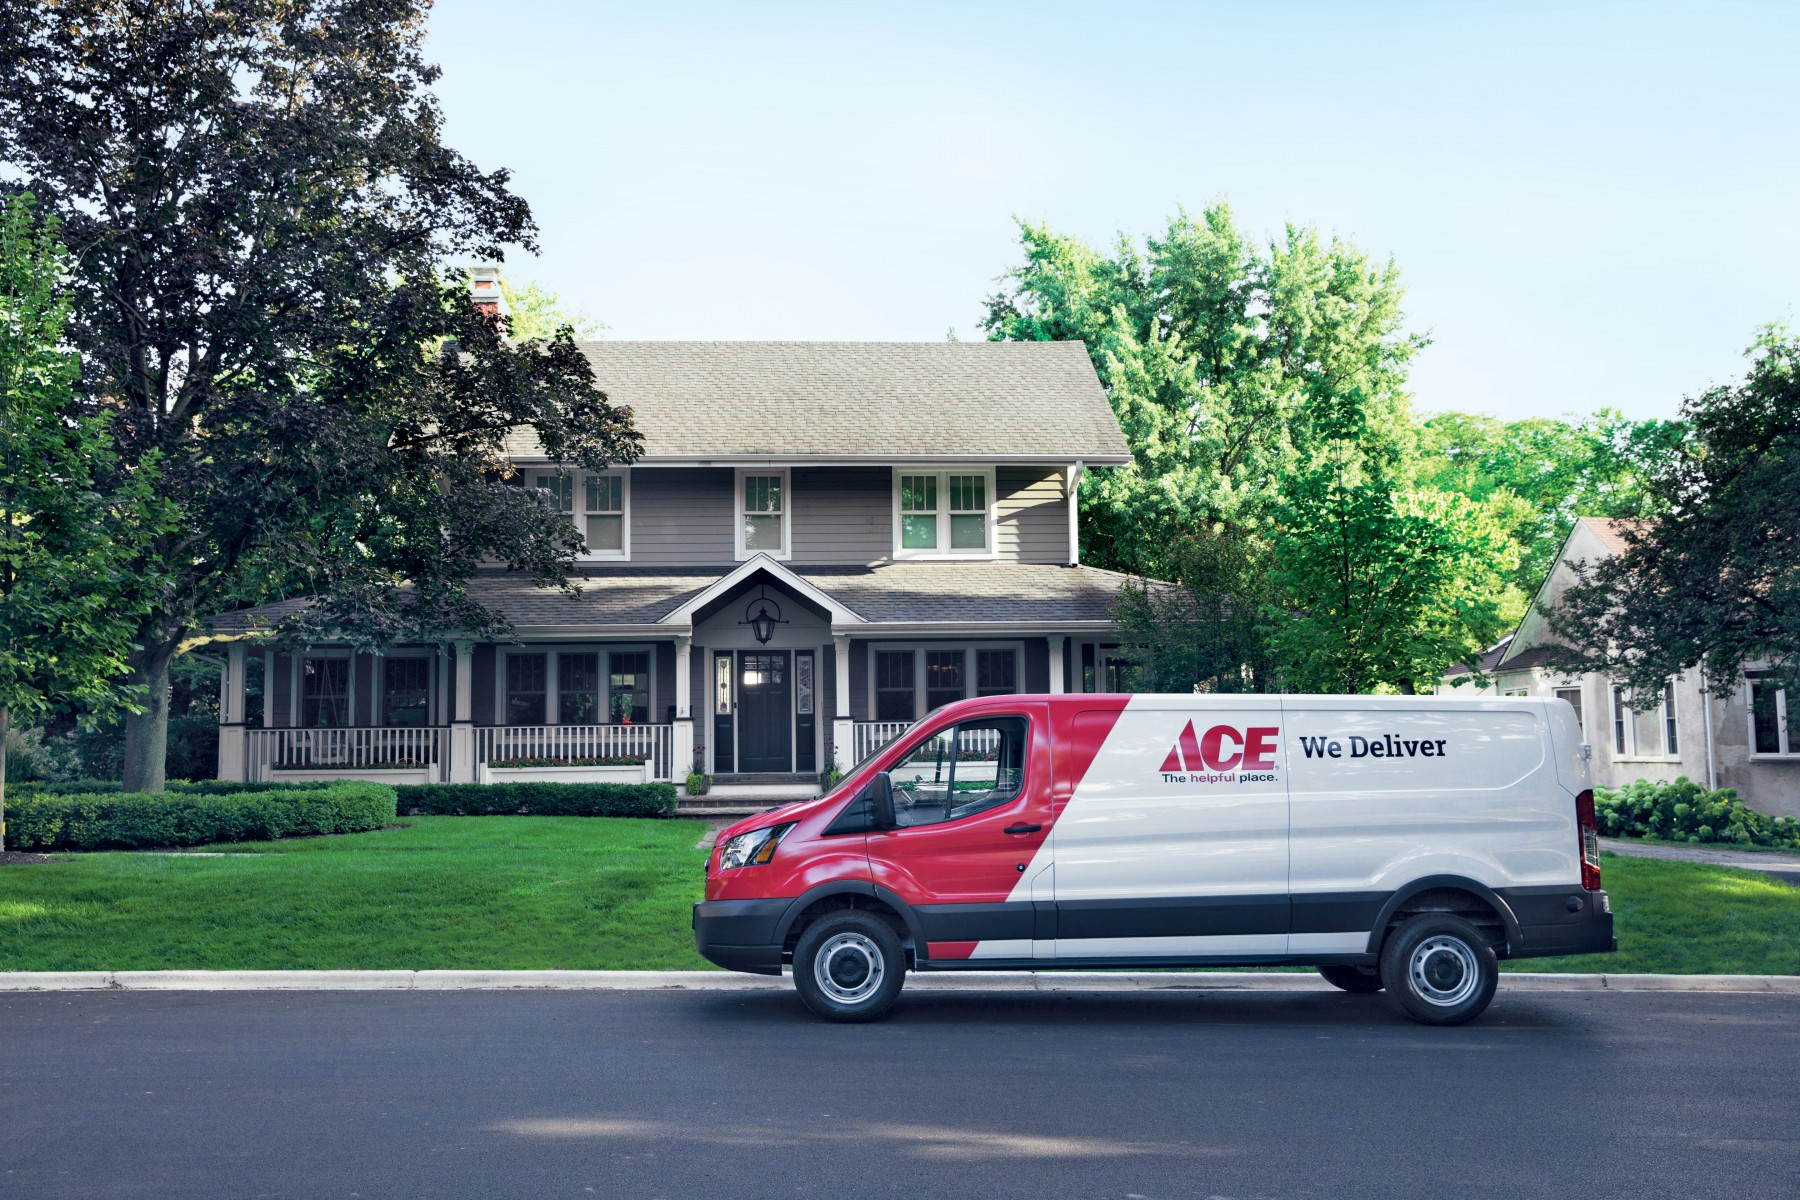 Best Air Filter Car >> Ace Hardware Announces New E-Commerce Delivery Service